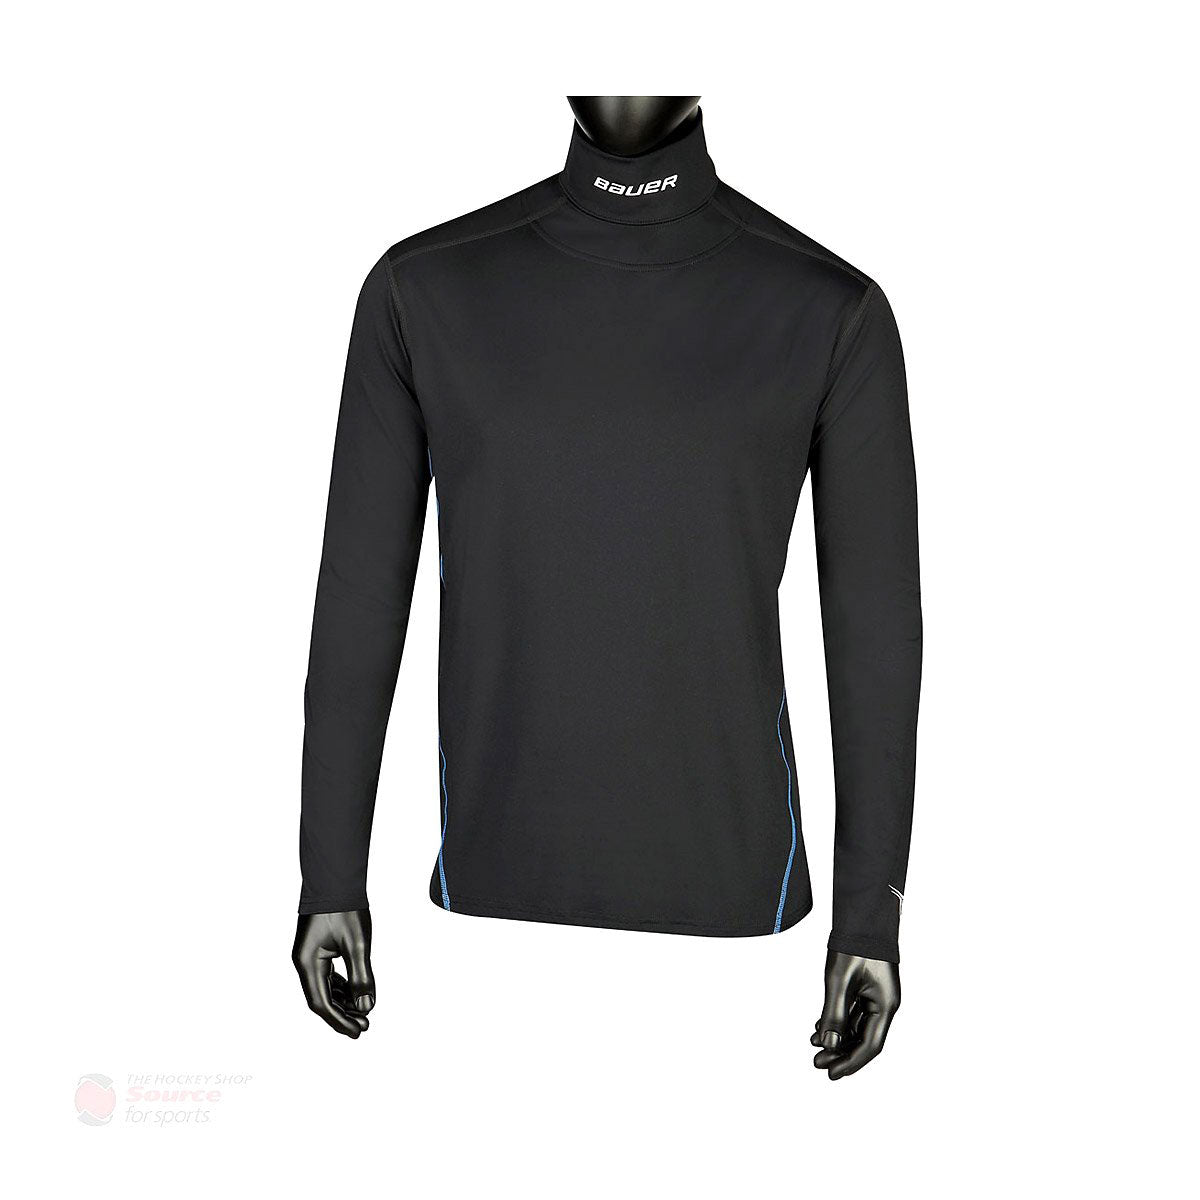 Bauer NG Core L/S Senior Neck Guard Shirt